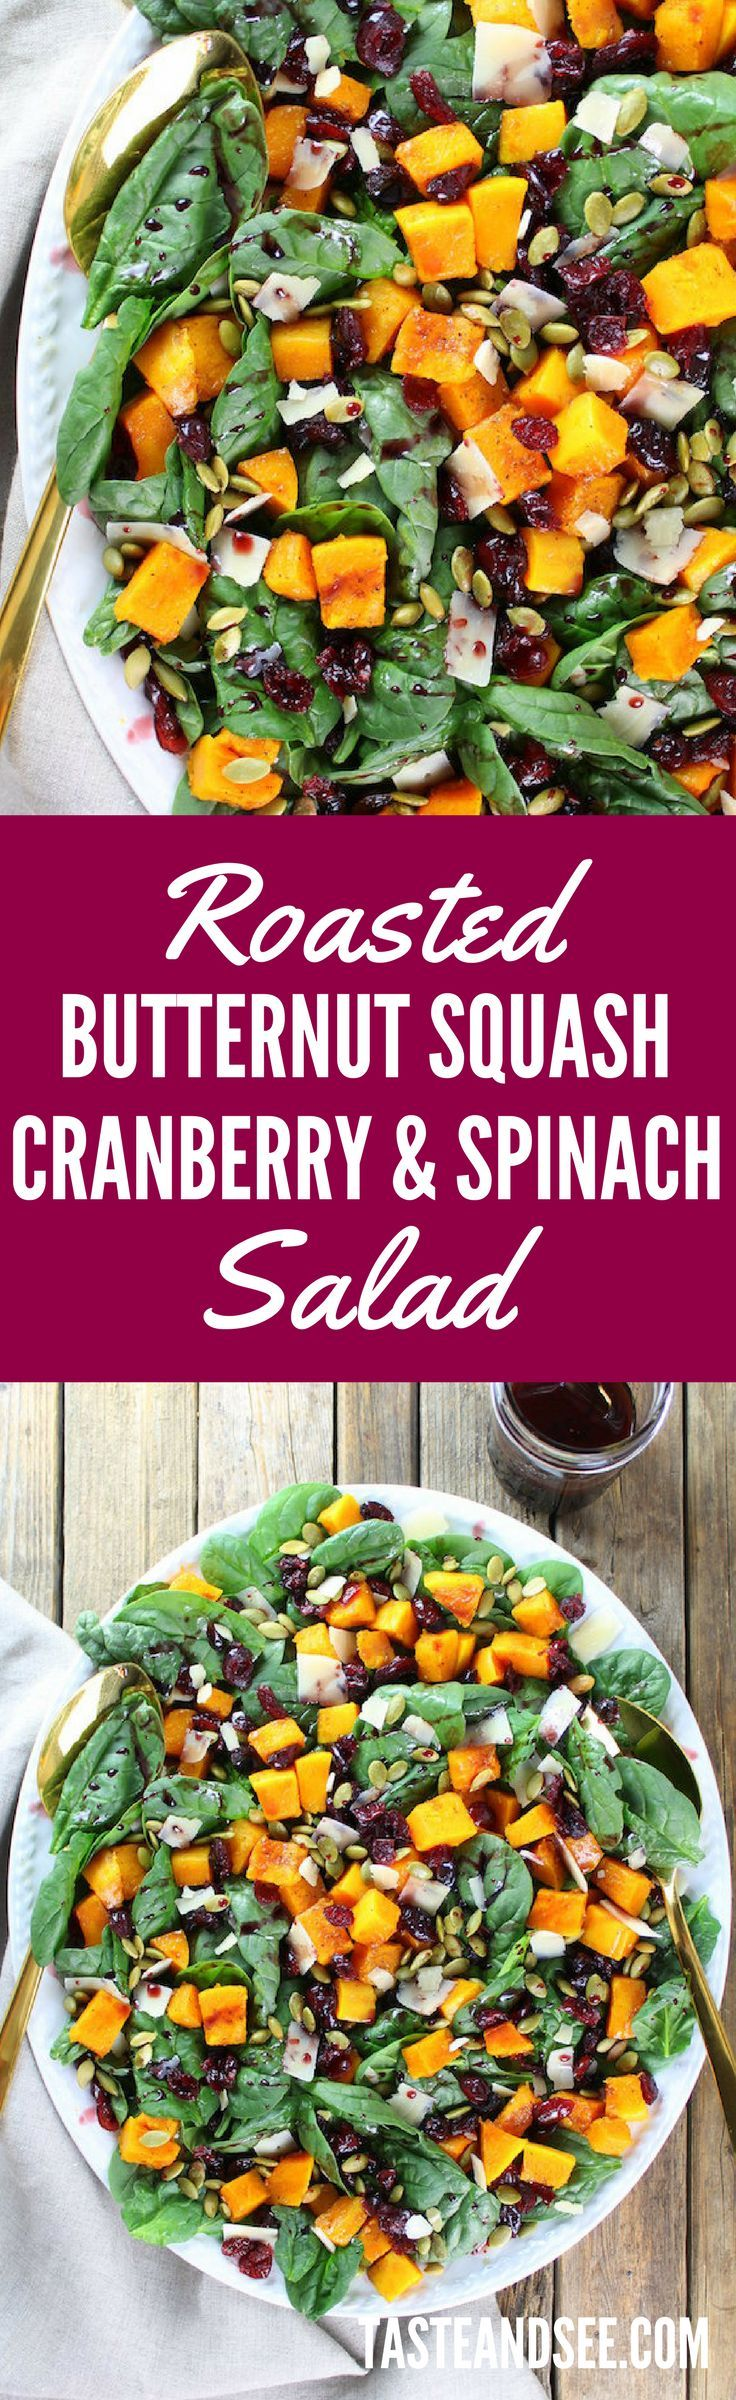 Roasted Butternut Squash, Cranberry and Spinach Salad with a Cran-Cabernet Dressing - Healthy | Low-carb  | http://tasteandsee.com